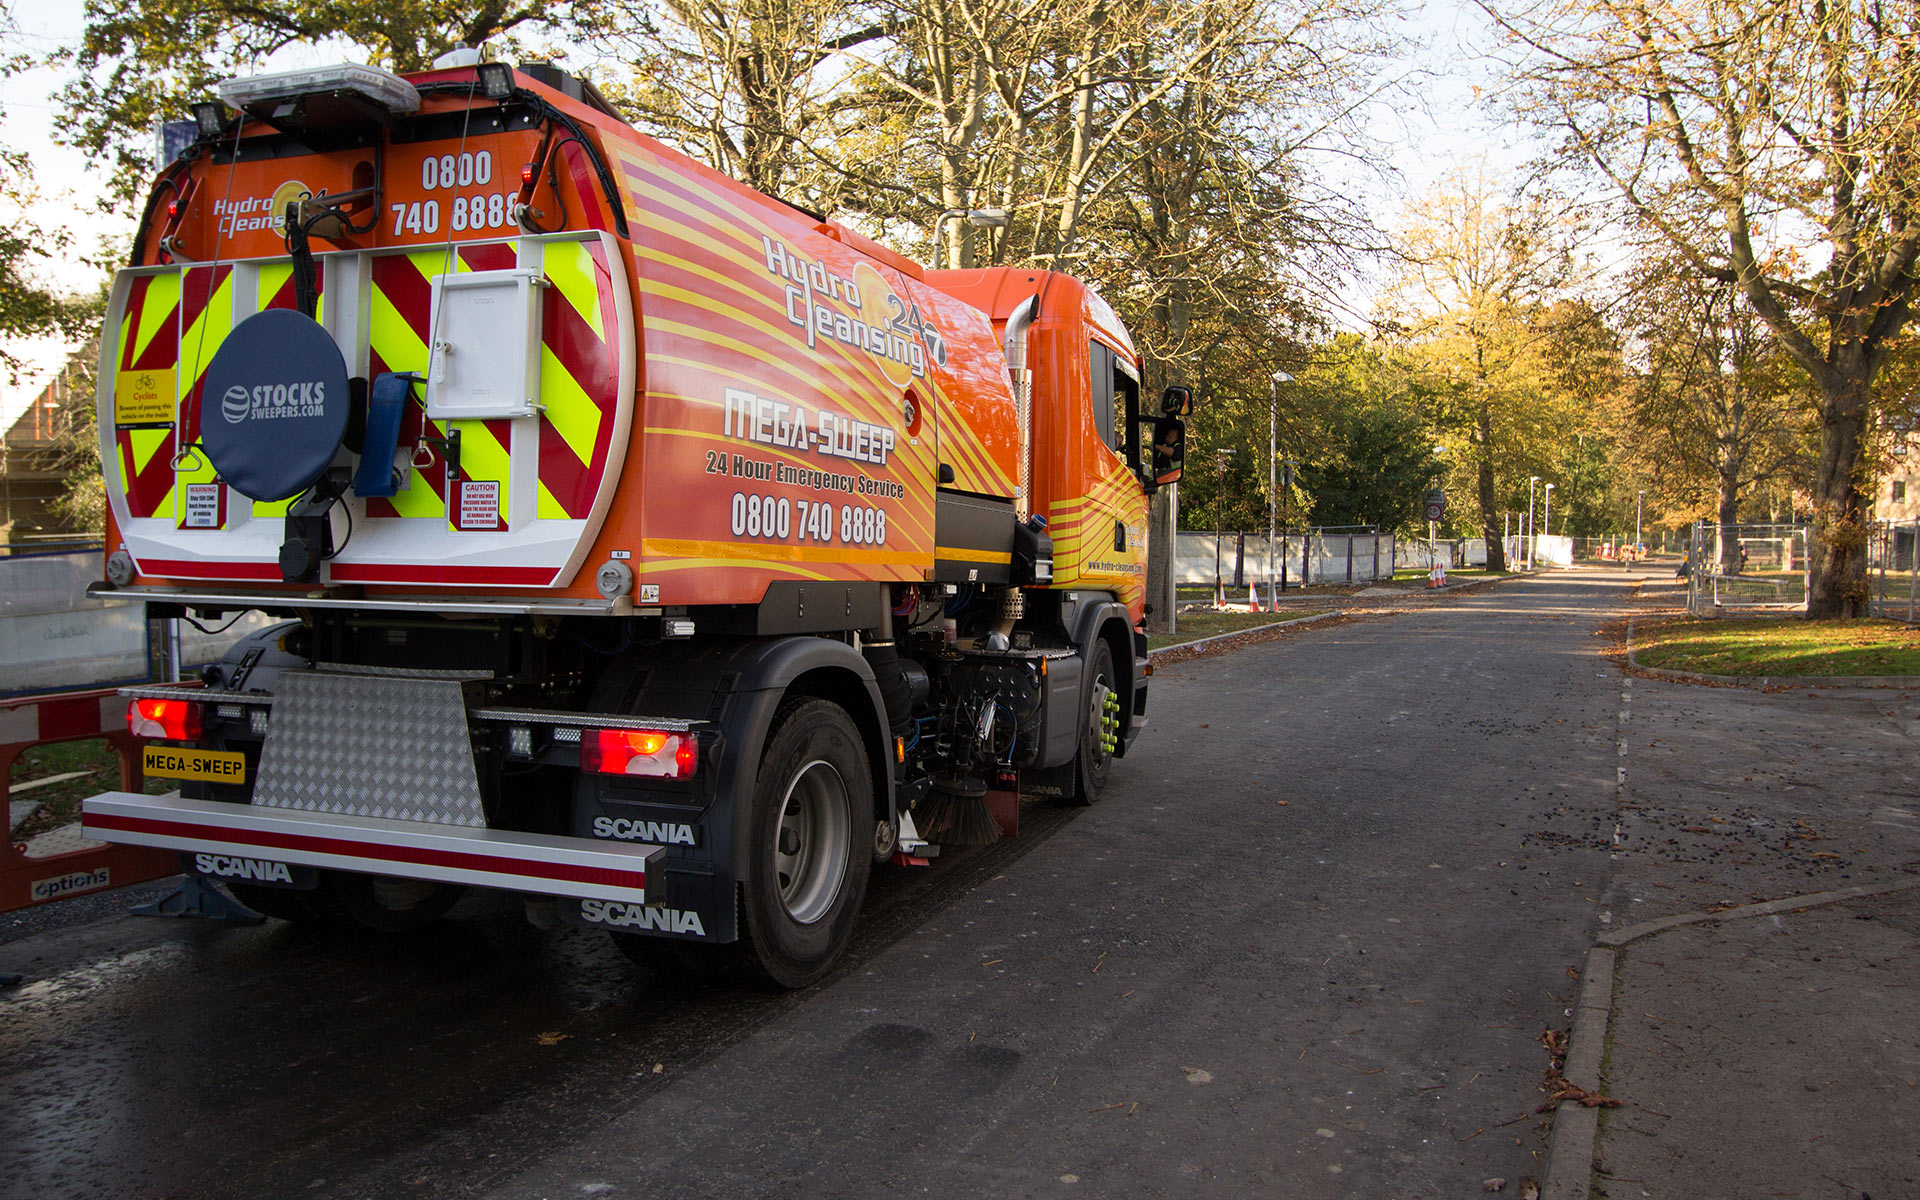 Road sweeper compacting high volumns of foliage